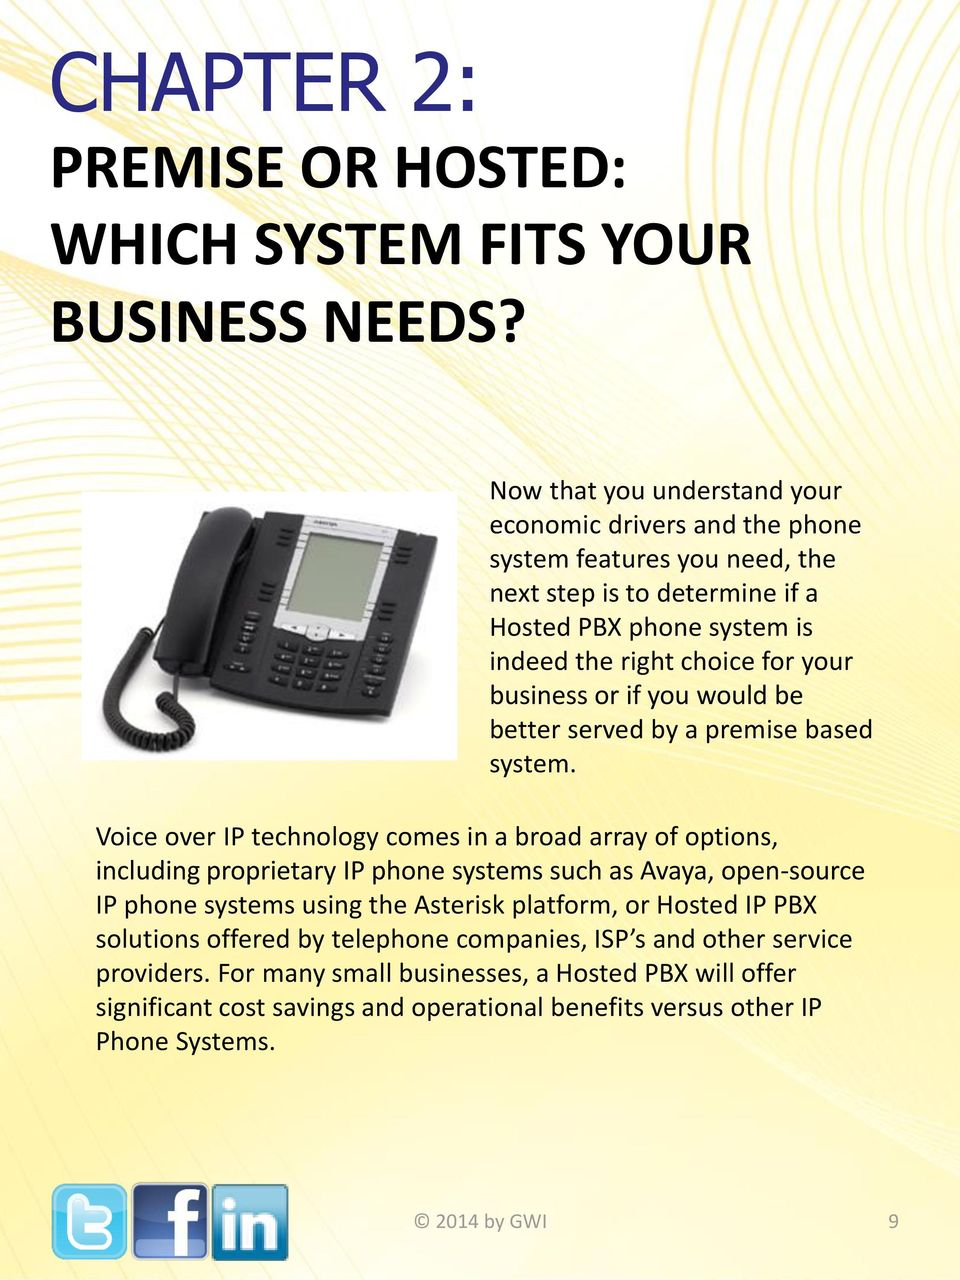 your business or if you would be better served by a premise based system.